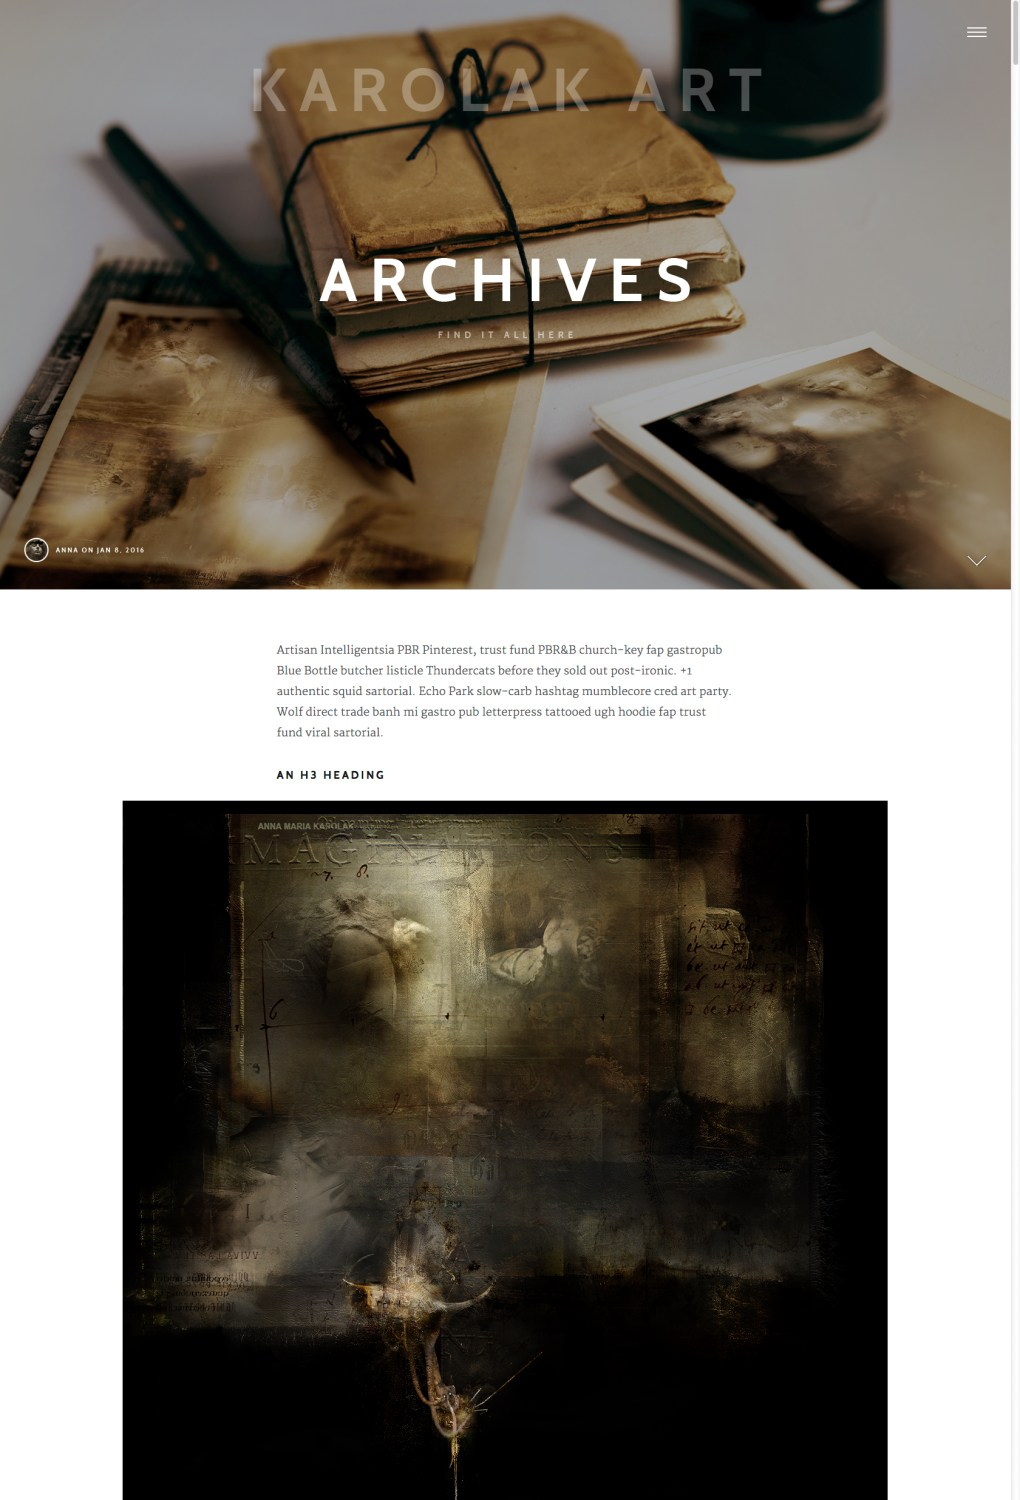 Artistic Website Layout, the Example 02: the final project of the fullscreen hero area for one of the single page of this website in 2017, the fragment. Artistic Web Design - Art Portfolio Website.